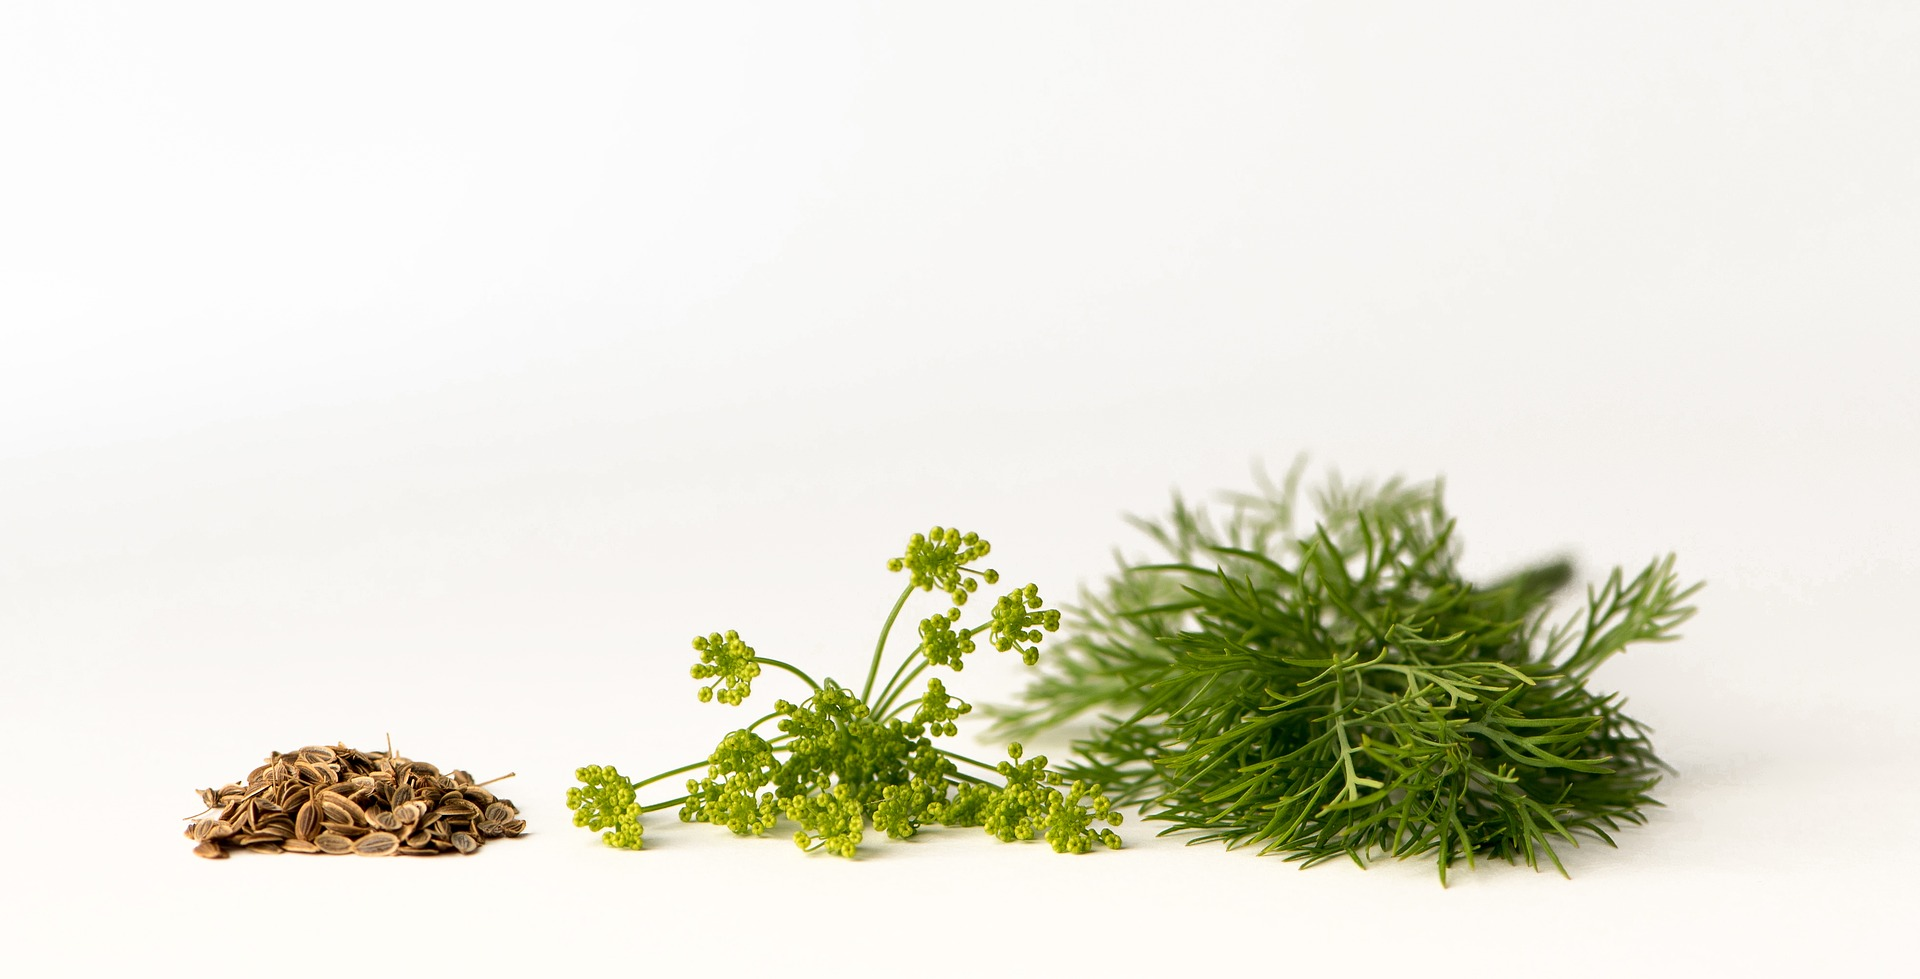 Tips For Growing Dill From Cuttings